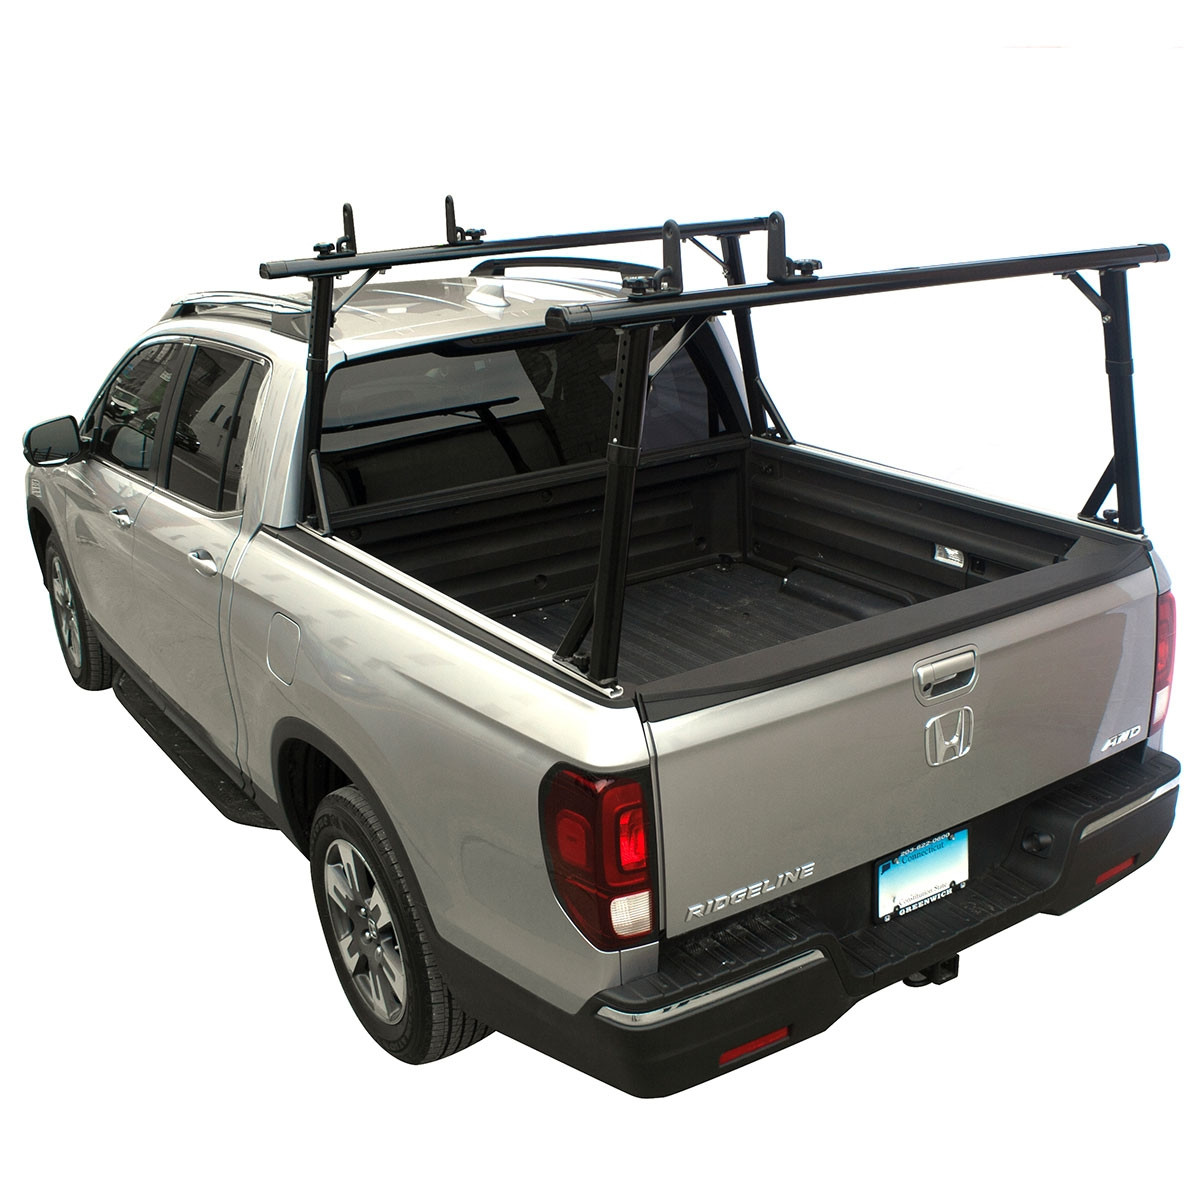 Vantech Ladder Rack P3000 For Honda Ridgeline 2017 Catalog